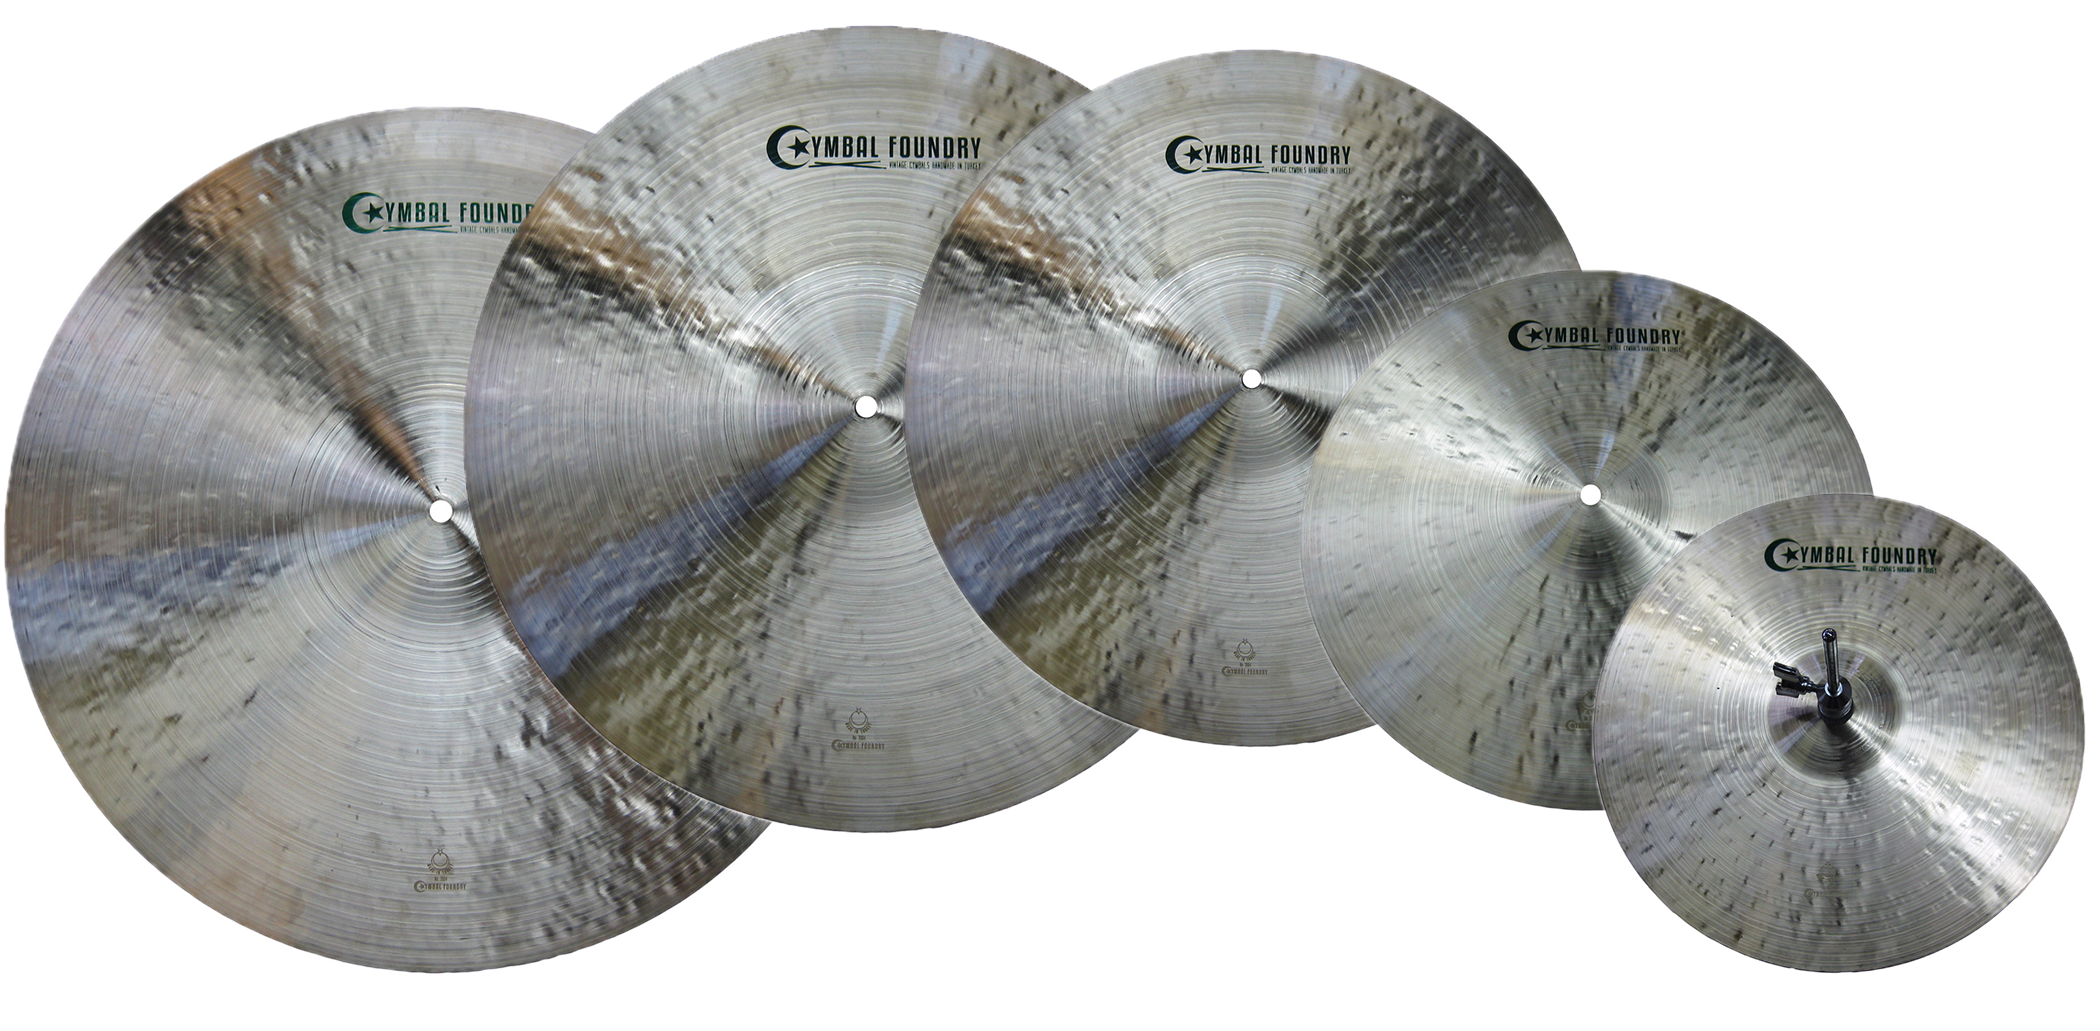 Cymbal Foundry Cymbals